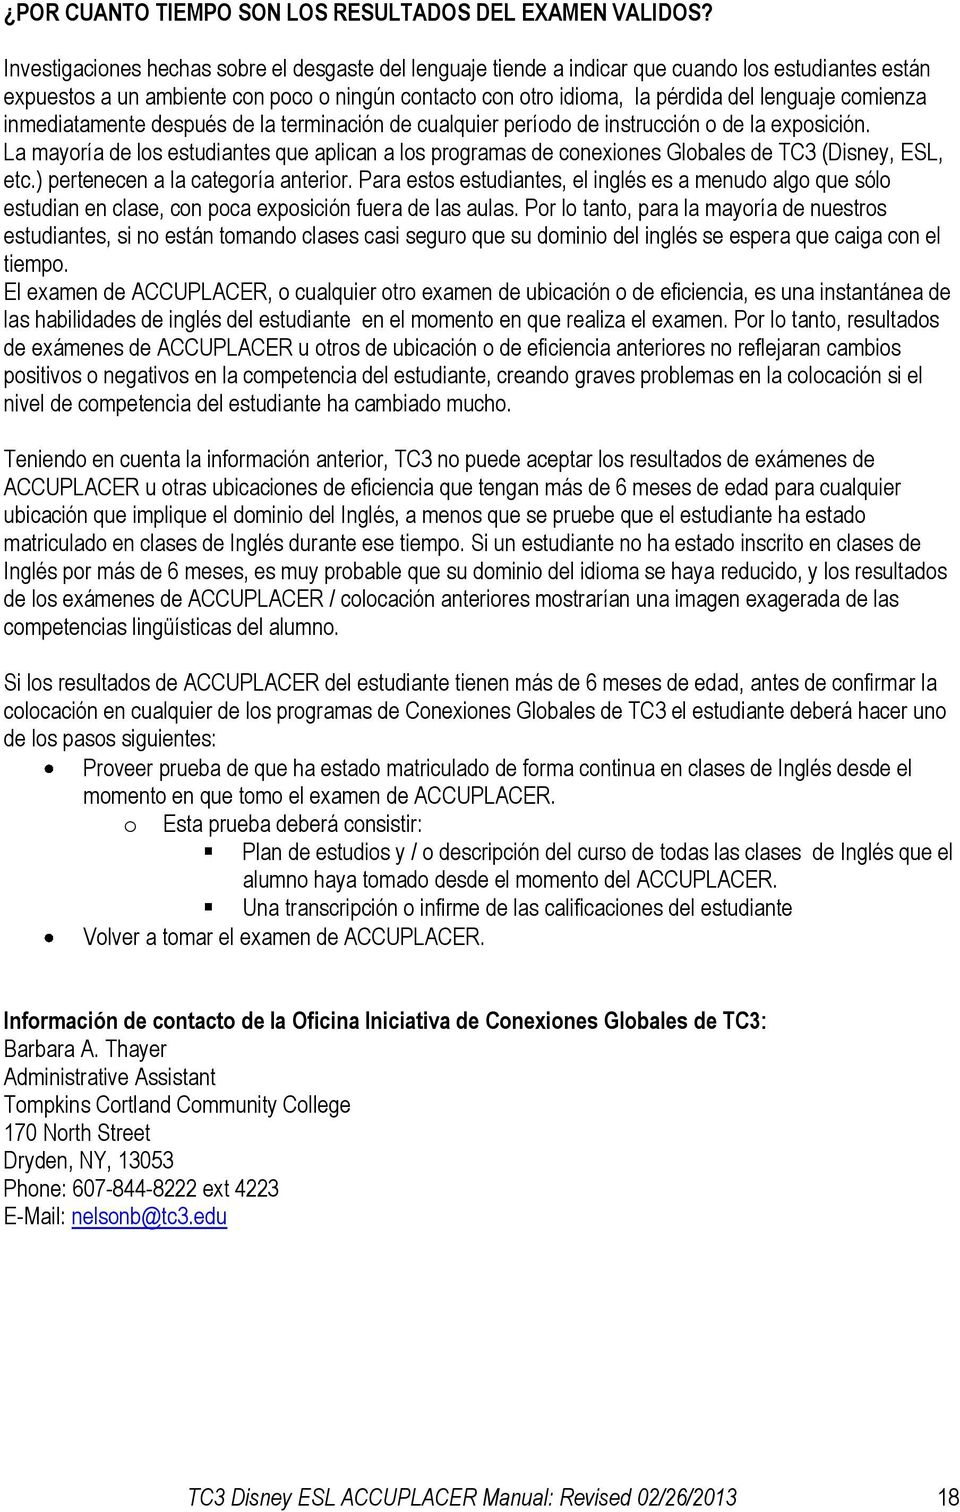 TC3 Disney ESL Manual de ACCUPLACER - PDF